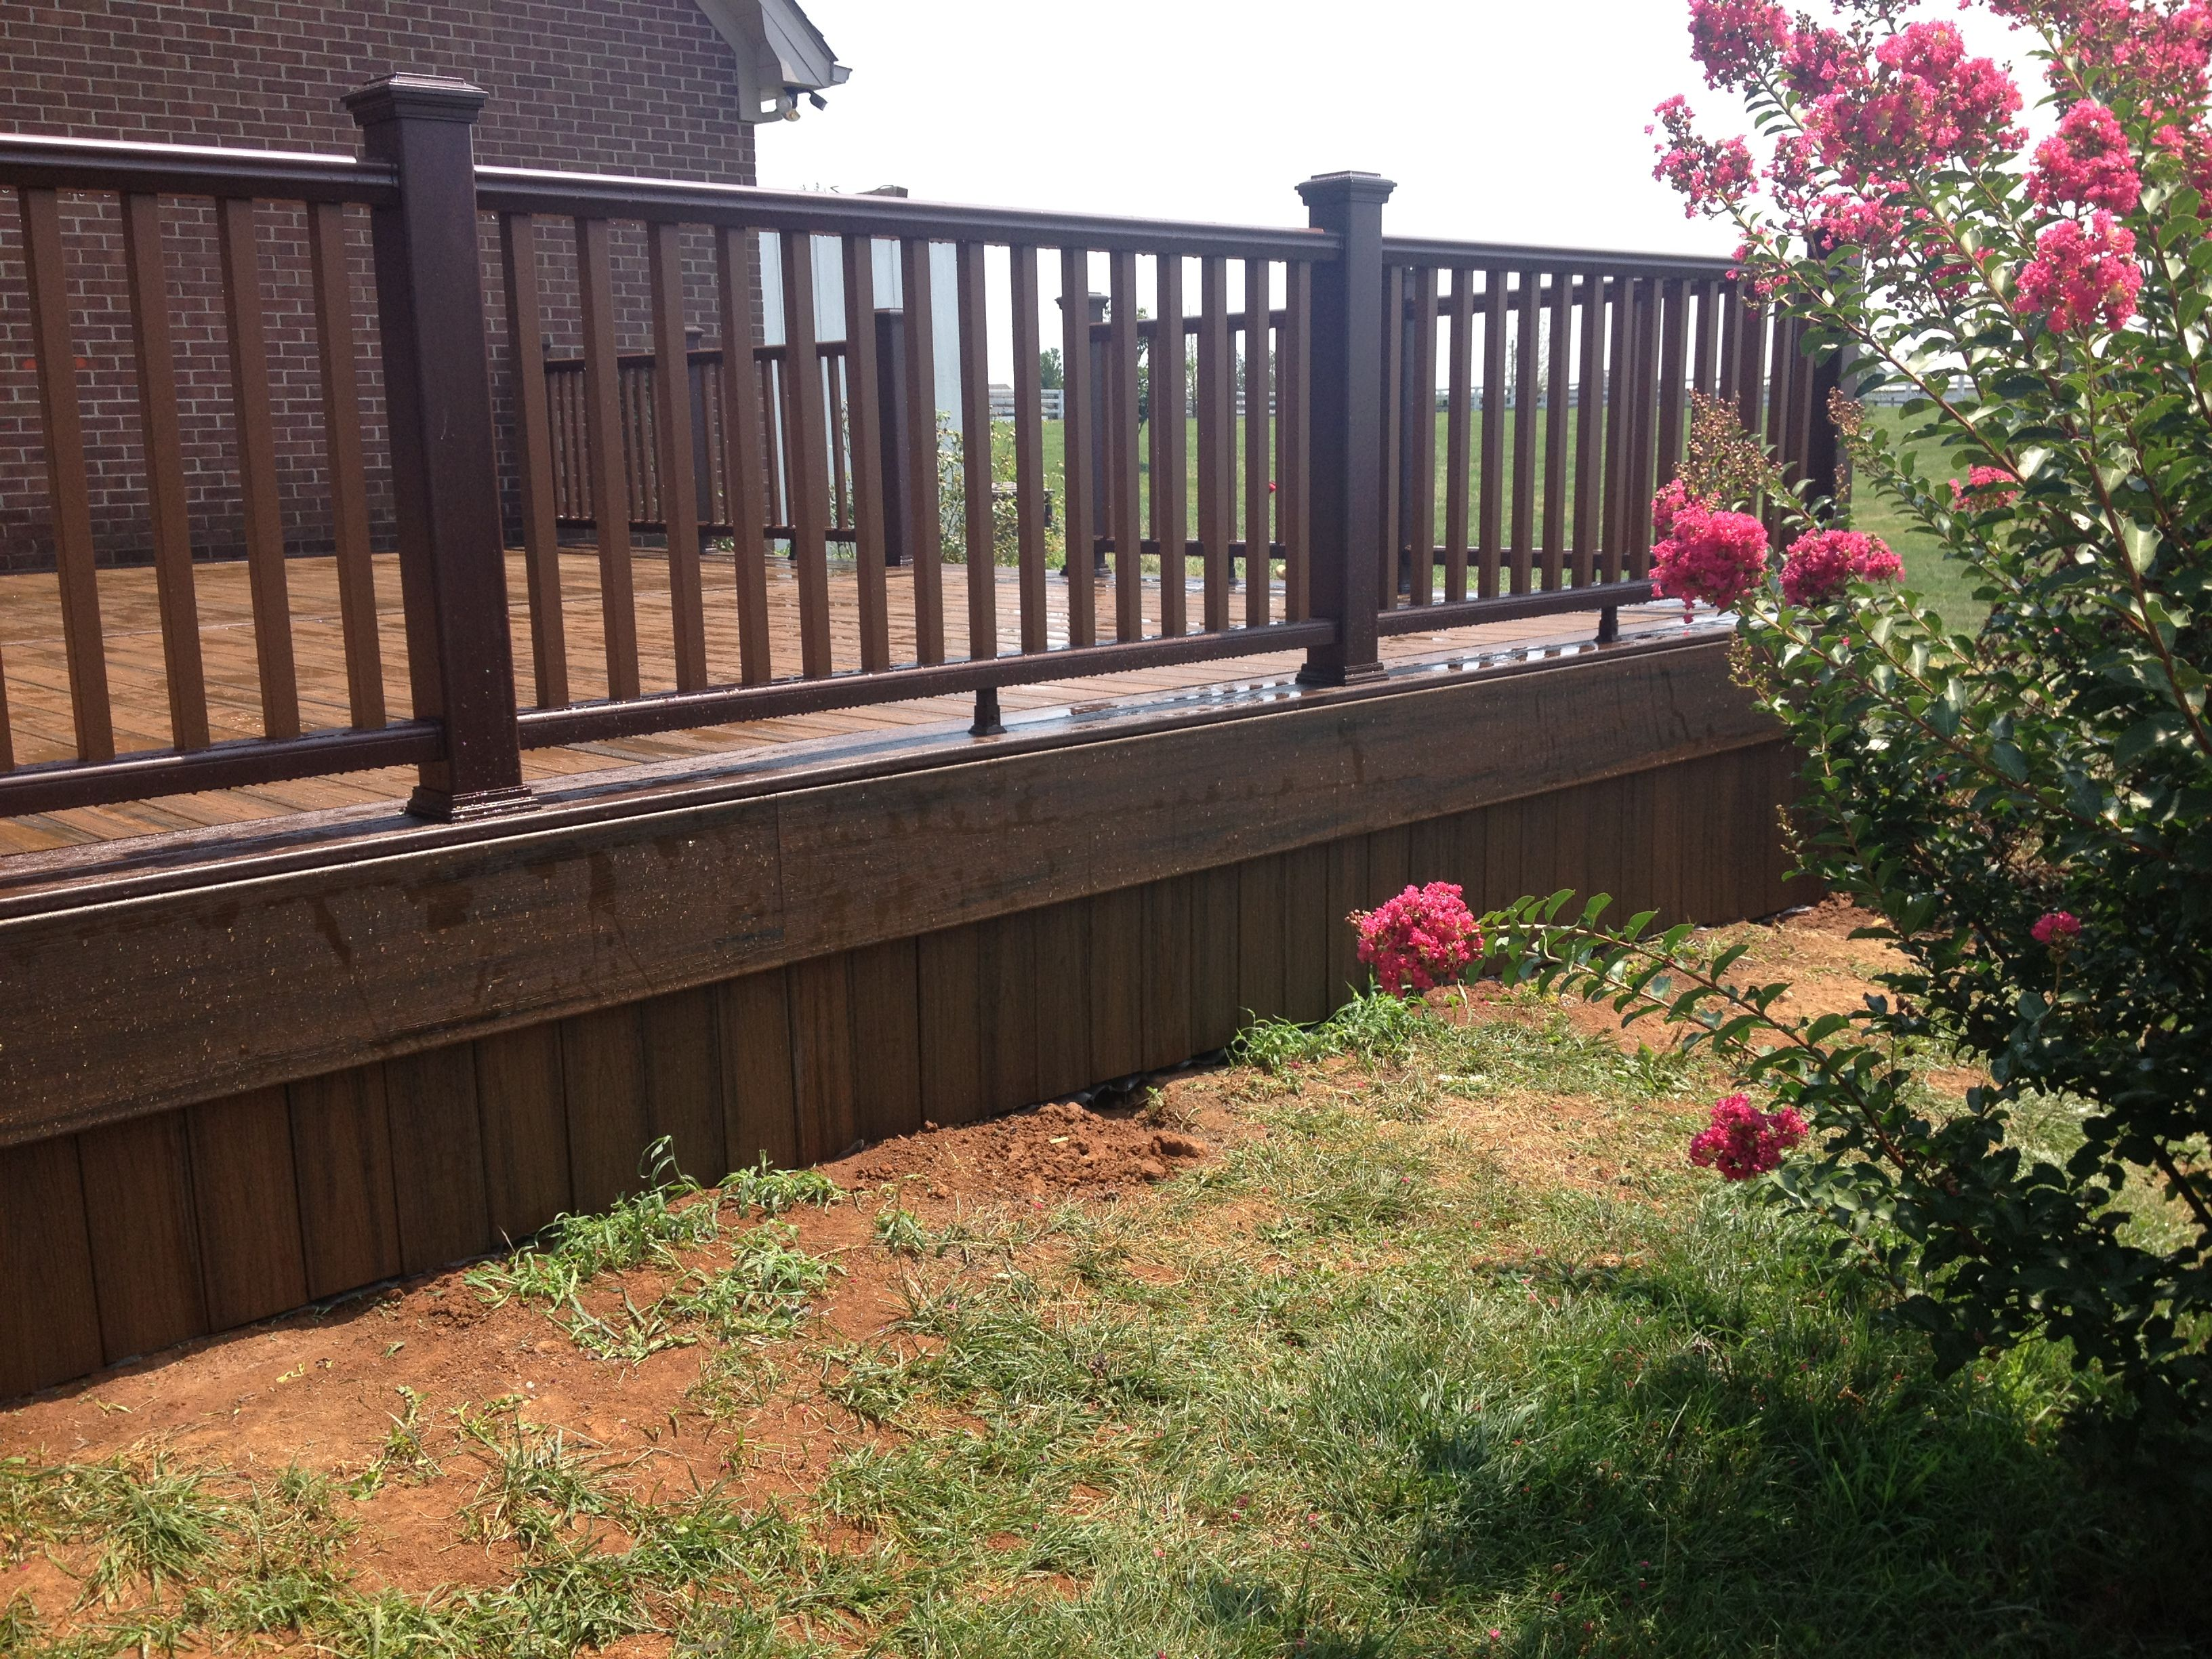 Best Vertical Spiced R*M Deck Boards For Skirting Deck 640 x 480